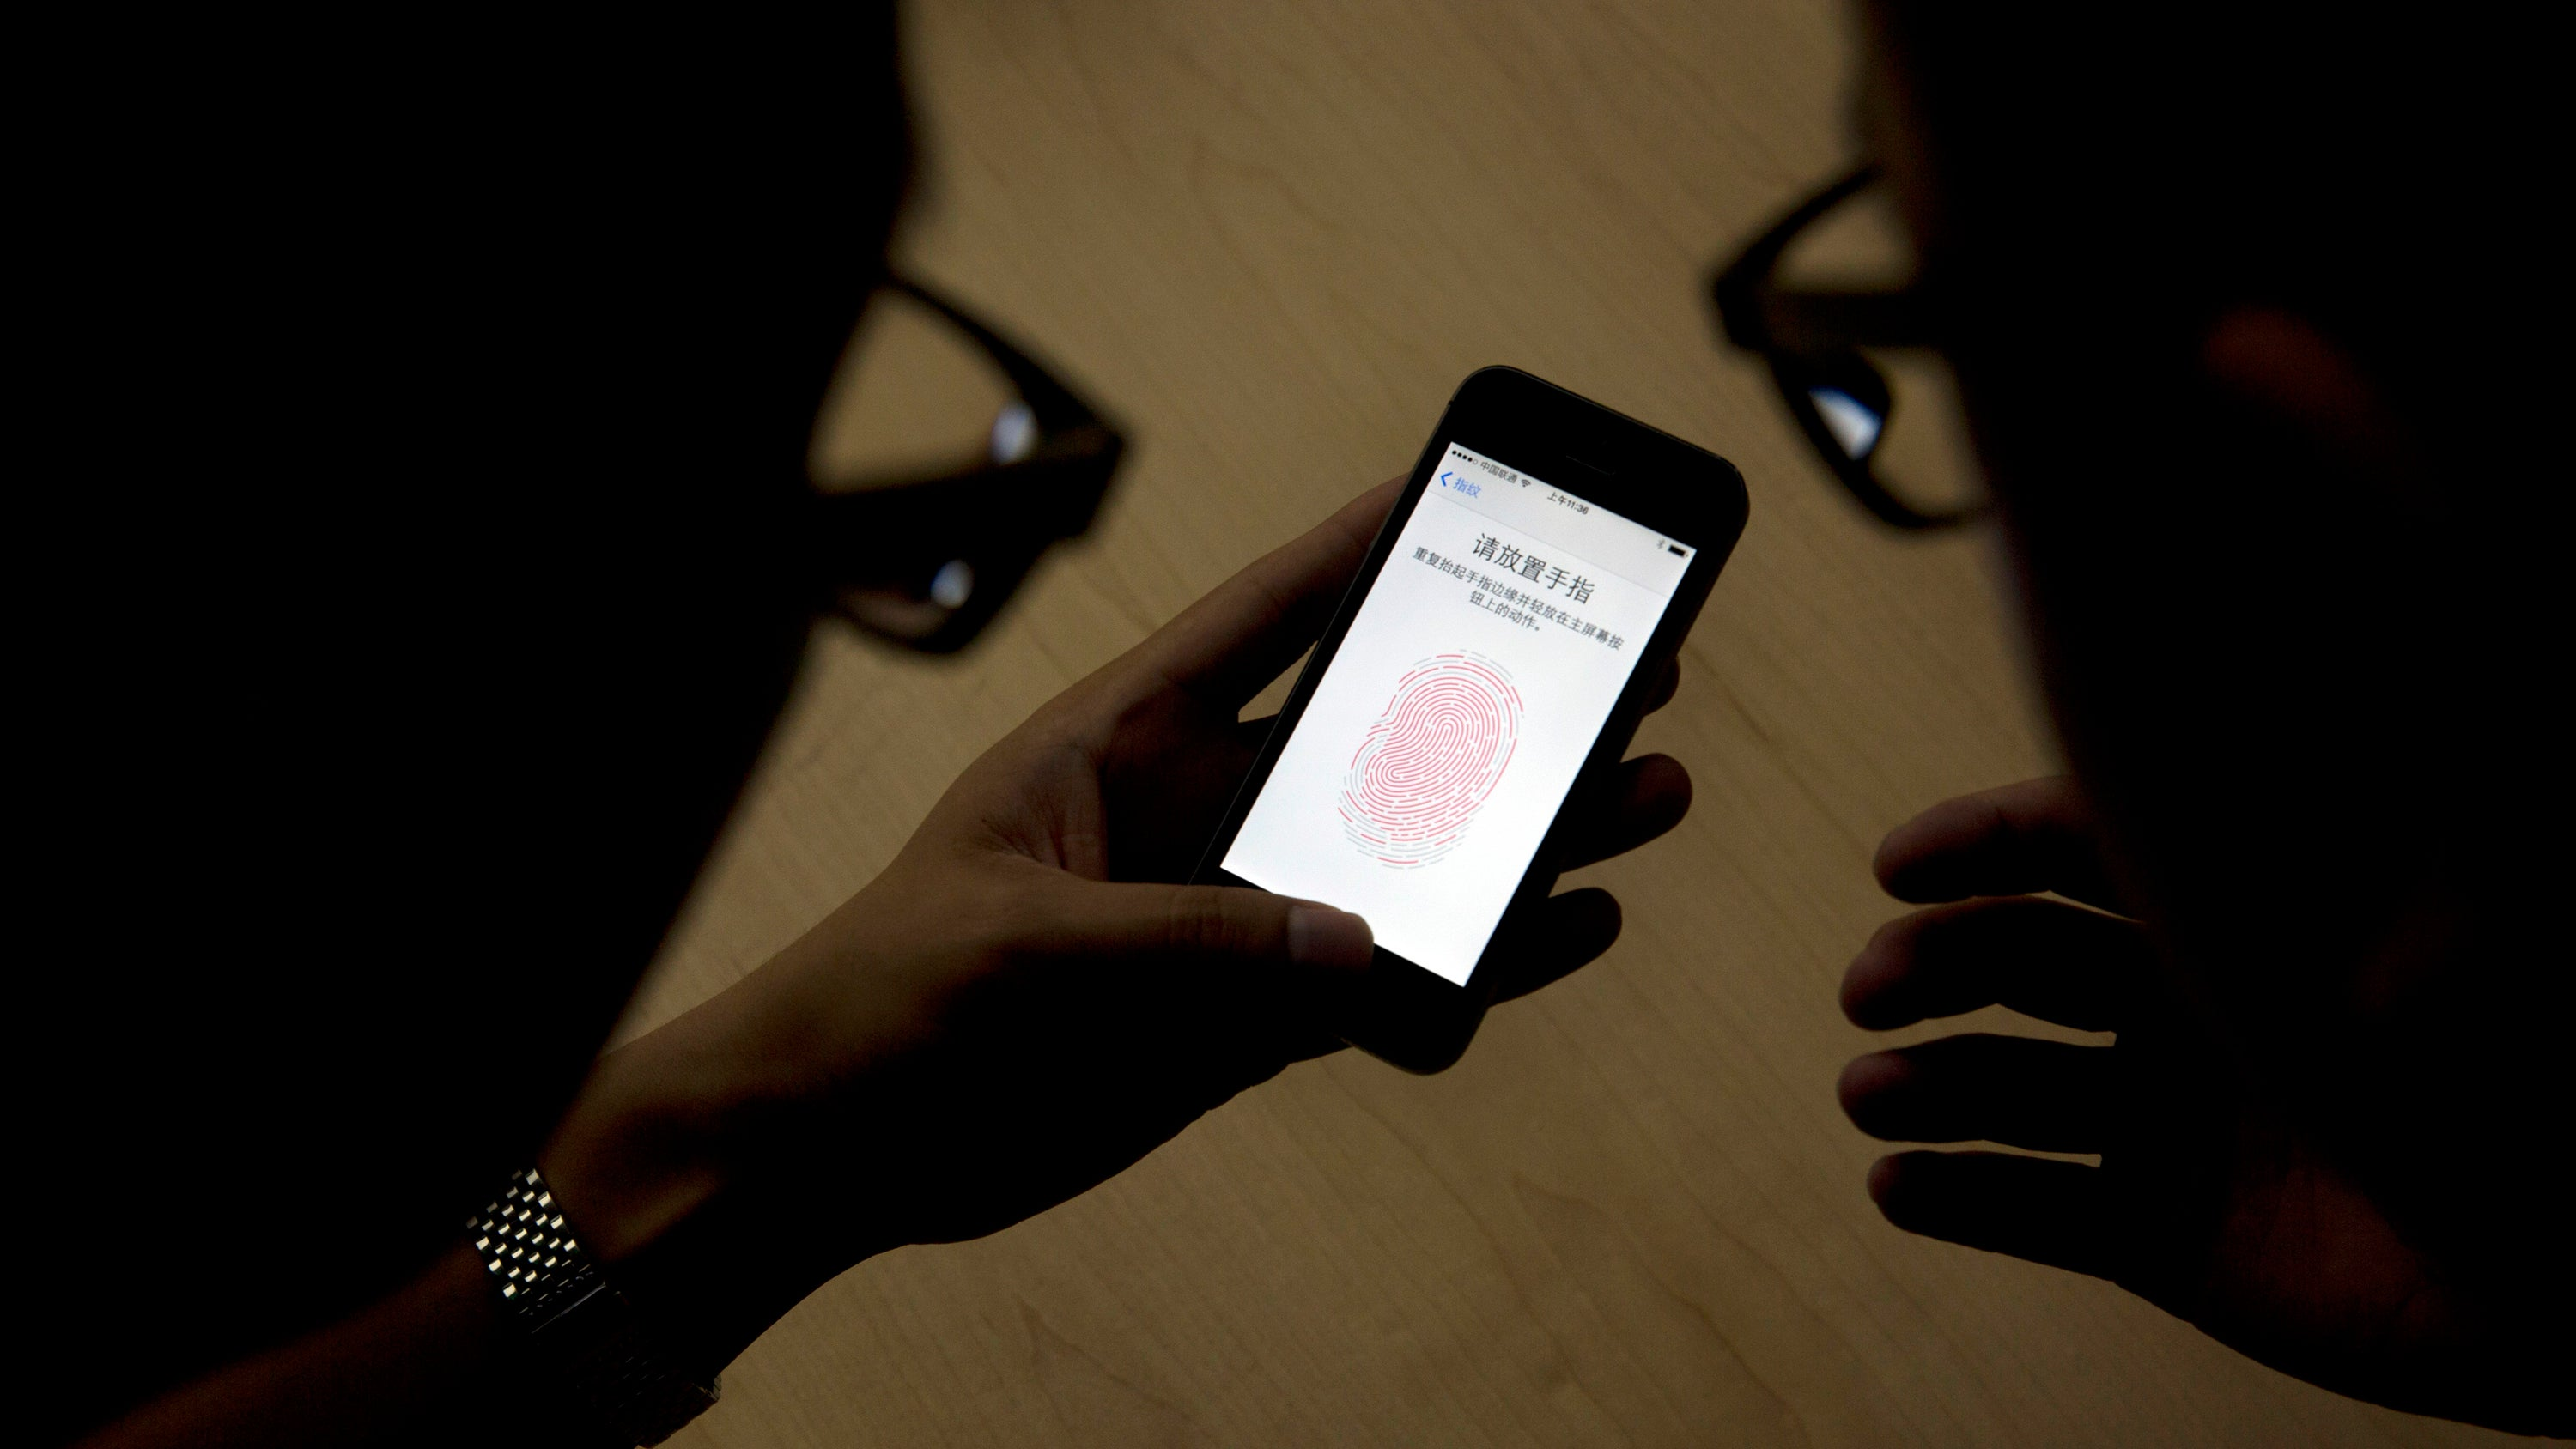 cybersecurity law-enforcement police security smartphones touchid